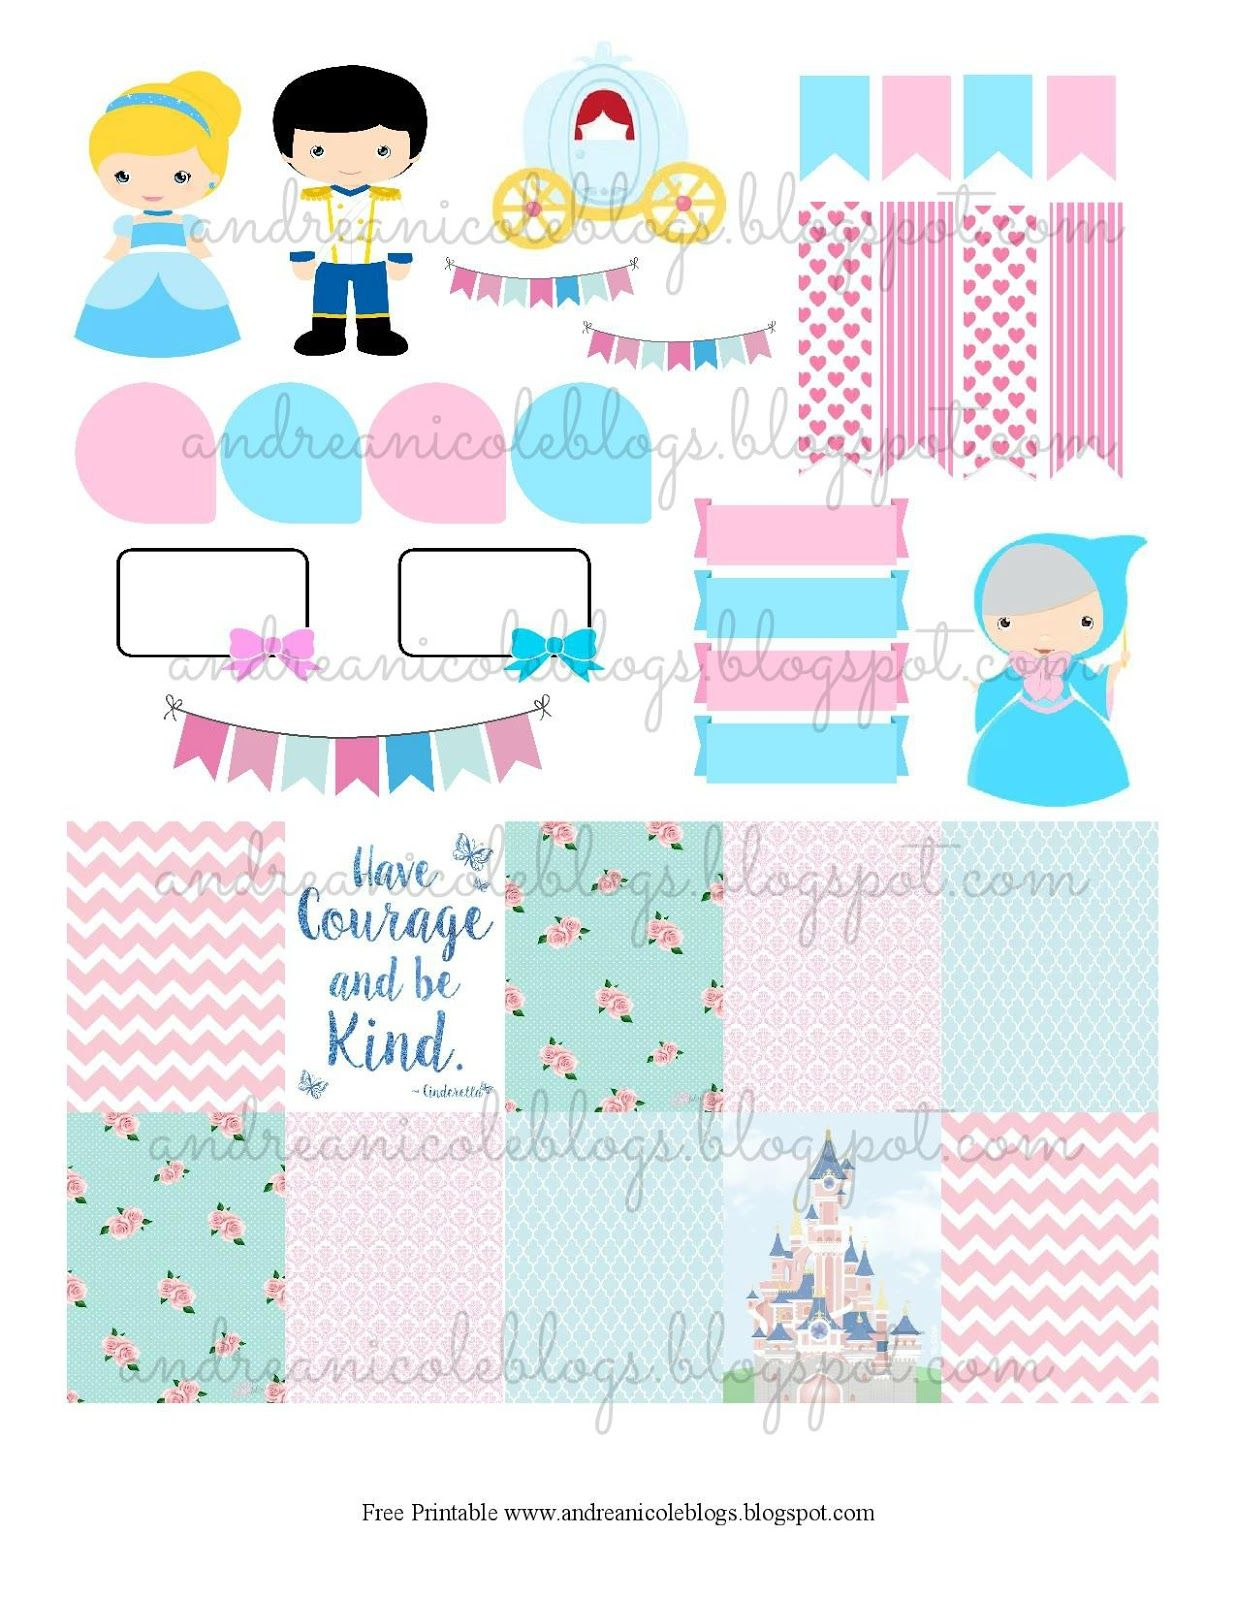 andrea nicole have courage and be kind free cinderella planner printable planners. Black Bedroom Furniture Sets. Home Design Ideas